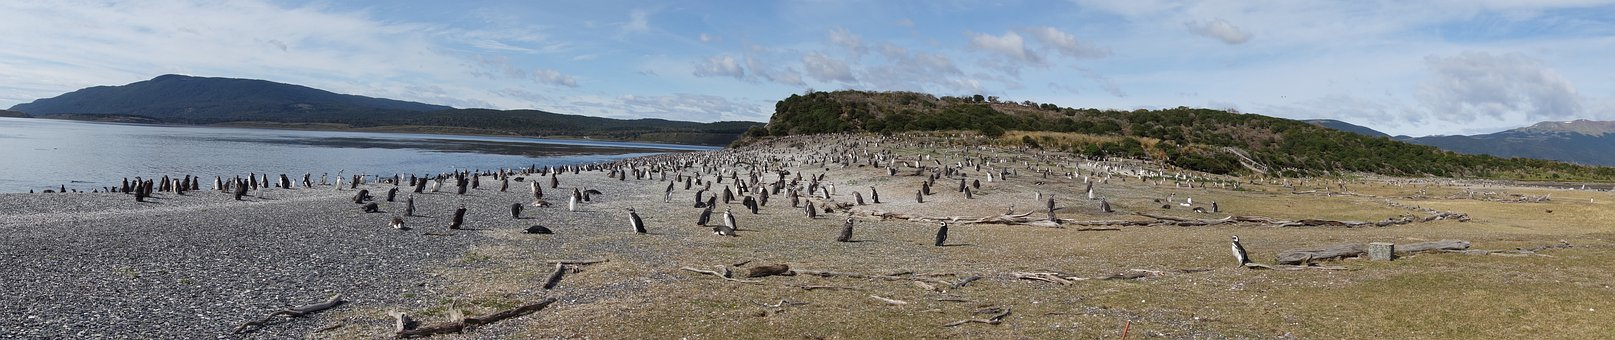 Argentina, Patagonia, Nature, Penguins, Panorama